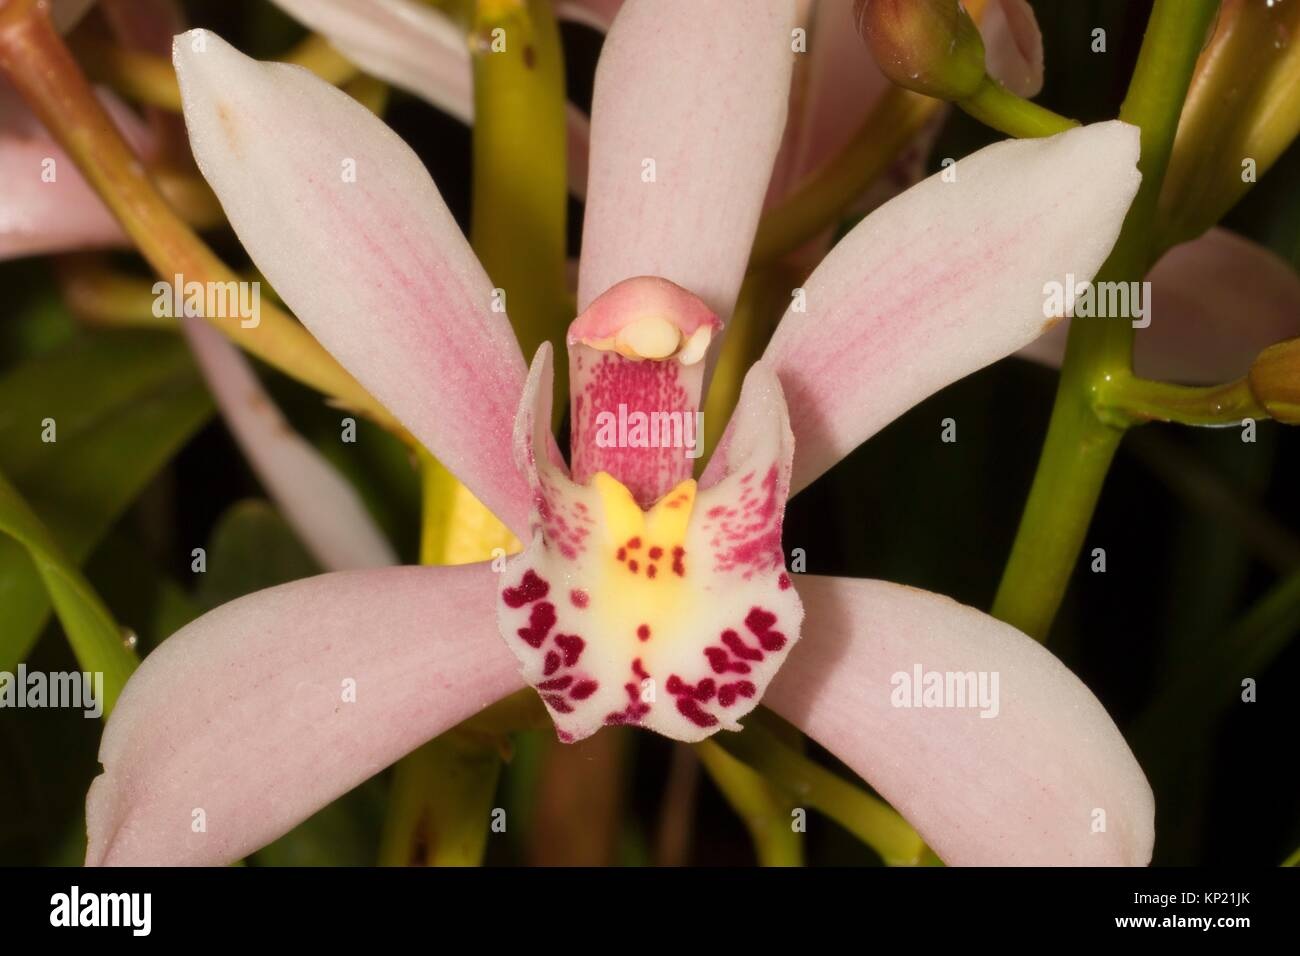 Saint-valentin Amour Cymbidium orchidée, Cherry City Orchid Society Show, Salem, Oregon. Photo Stock